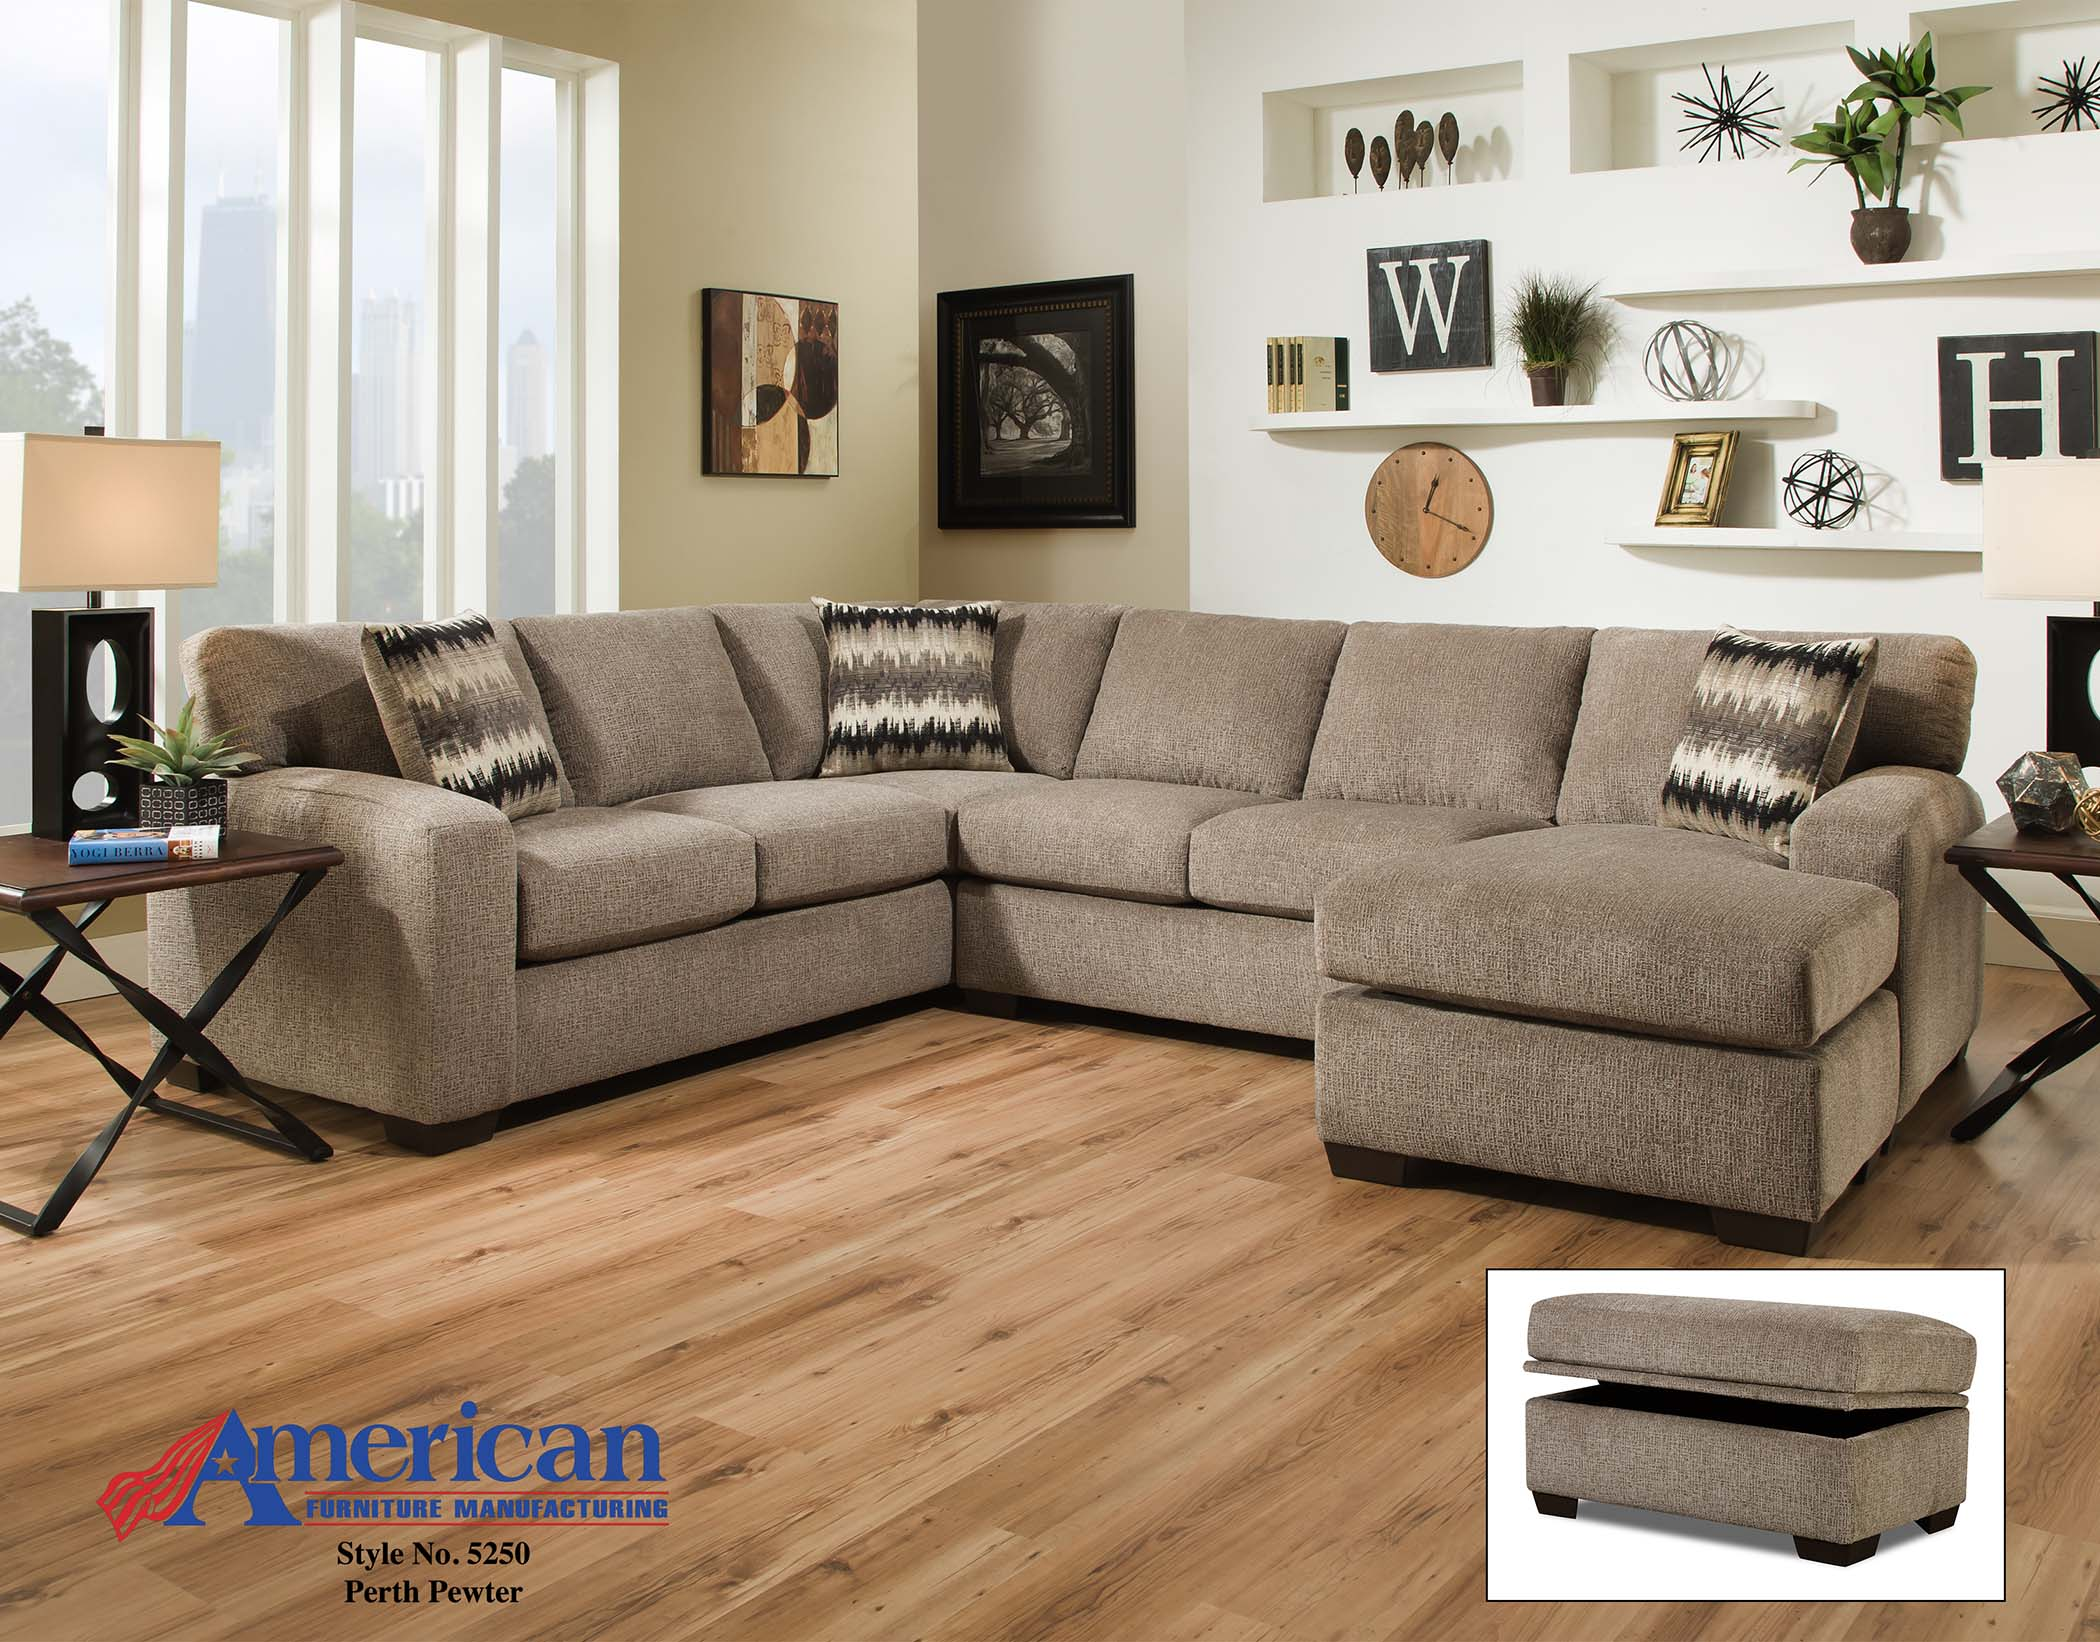 5250 Perth Pewter Sectional American Furniture Manufacturing